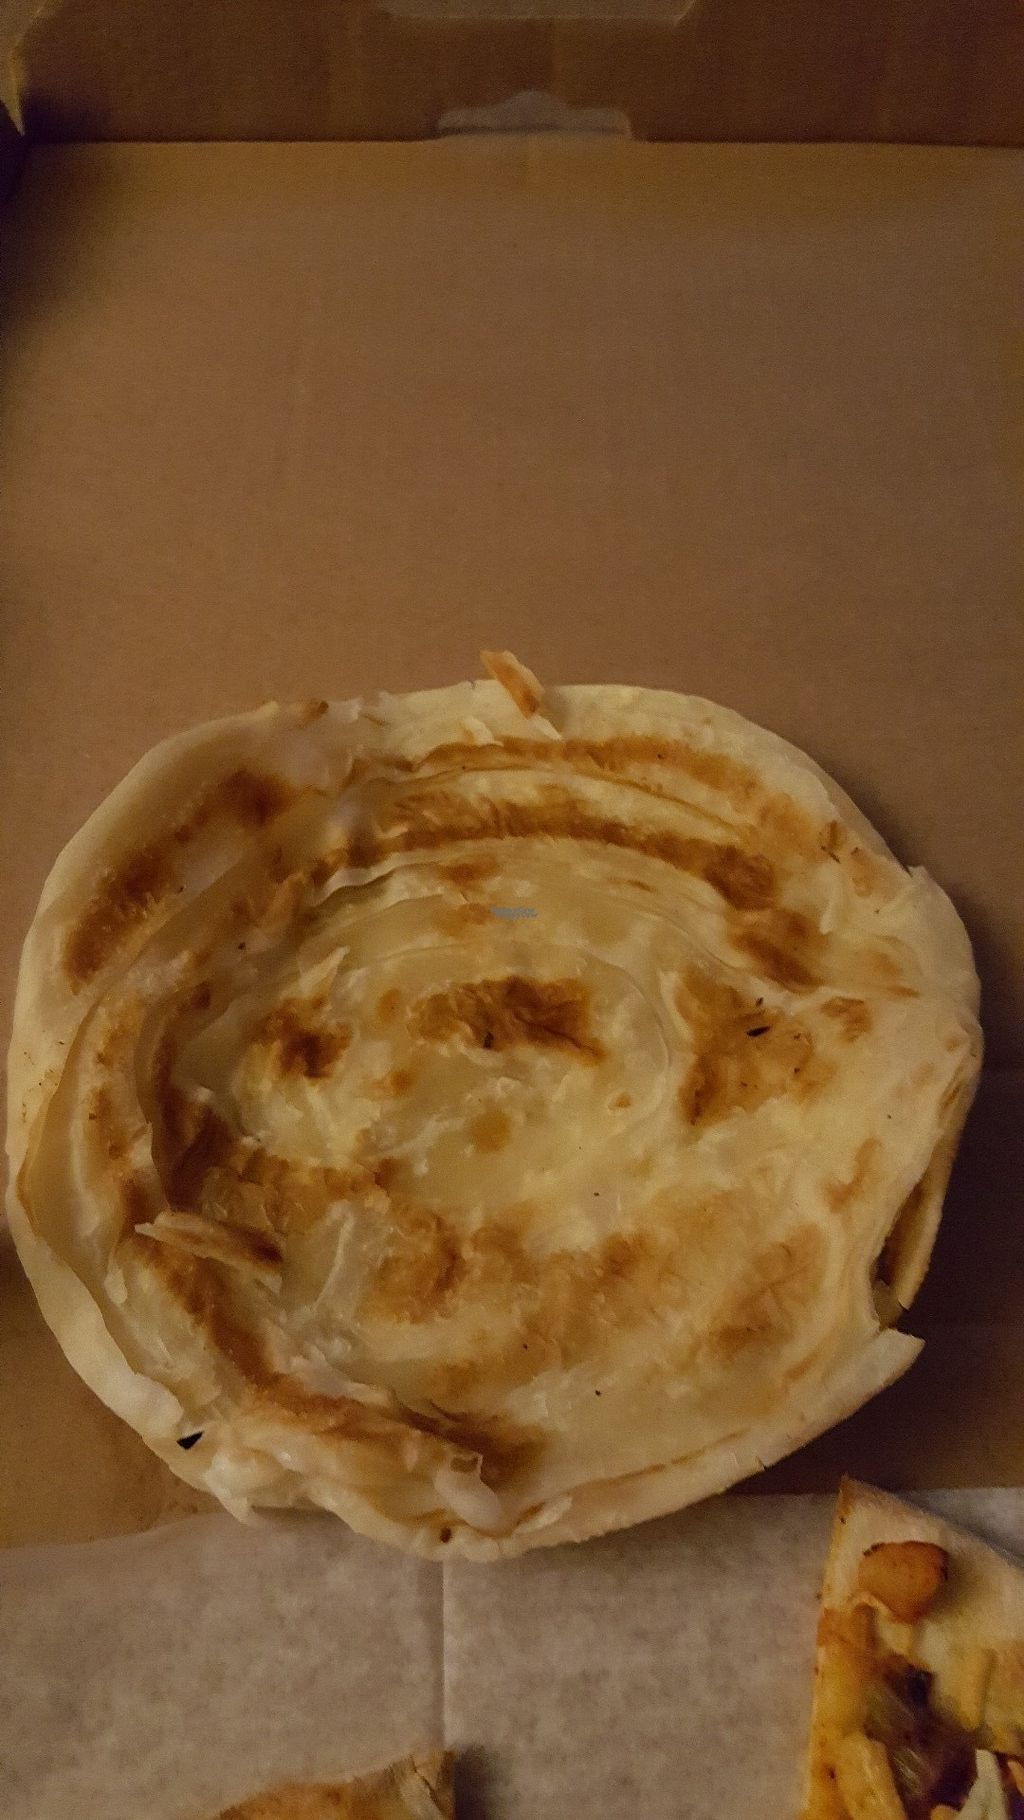 "Photo of Manjal Indian Fusion  by <a href=""/members/profile/Vegcake90"">Vegcake90</a> <br/>Vegan alternative to naan called paratha.  Super flaky! <br/> September 20, 2016  - <a href='/contact/abuse/image/80300/176916'>Report</a>"